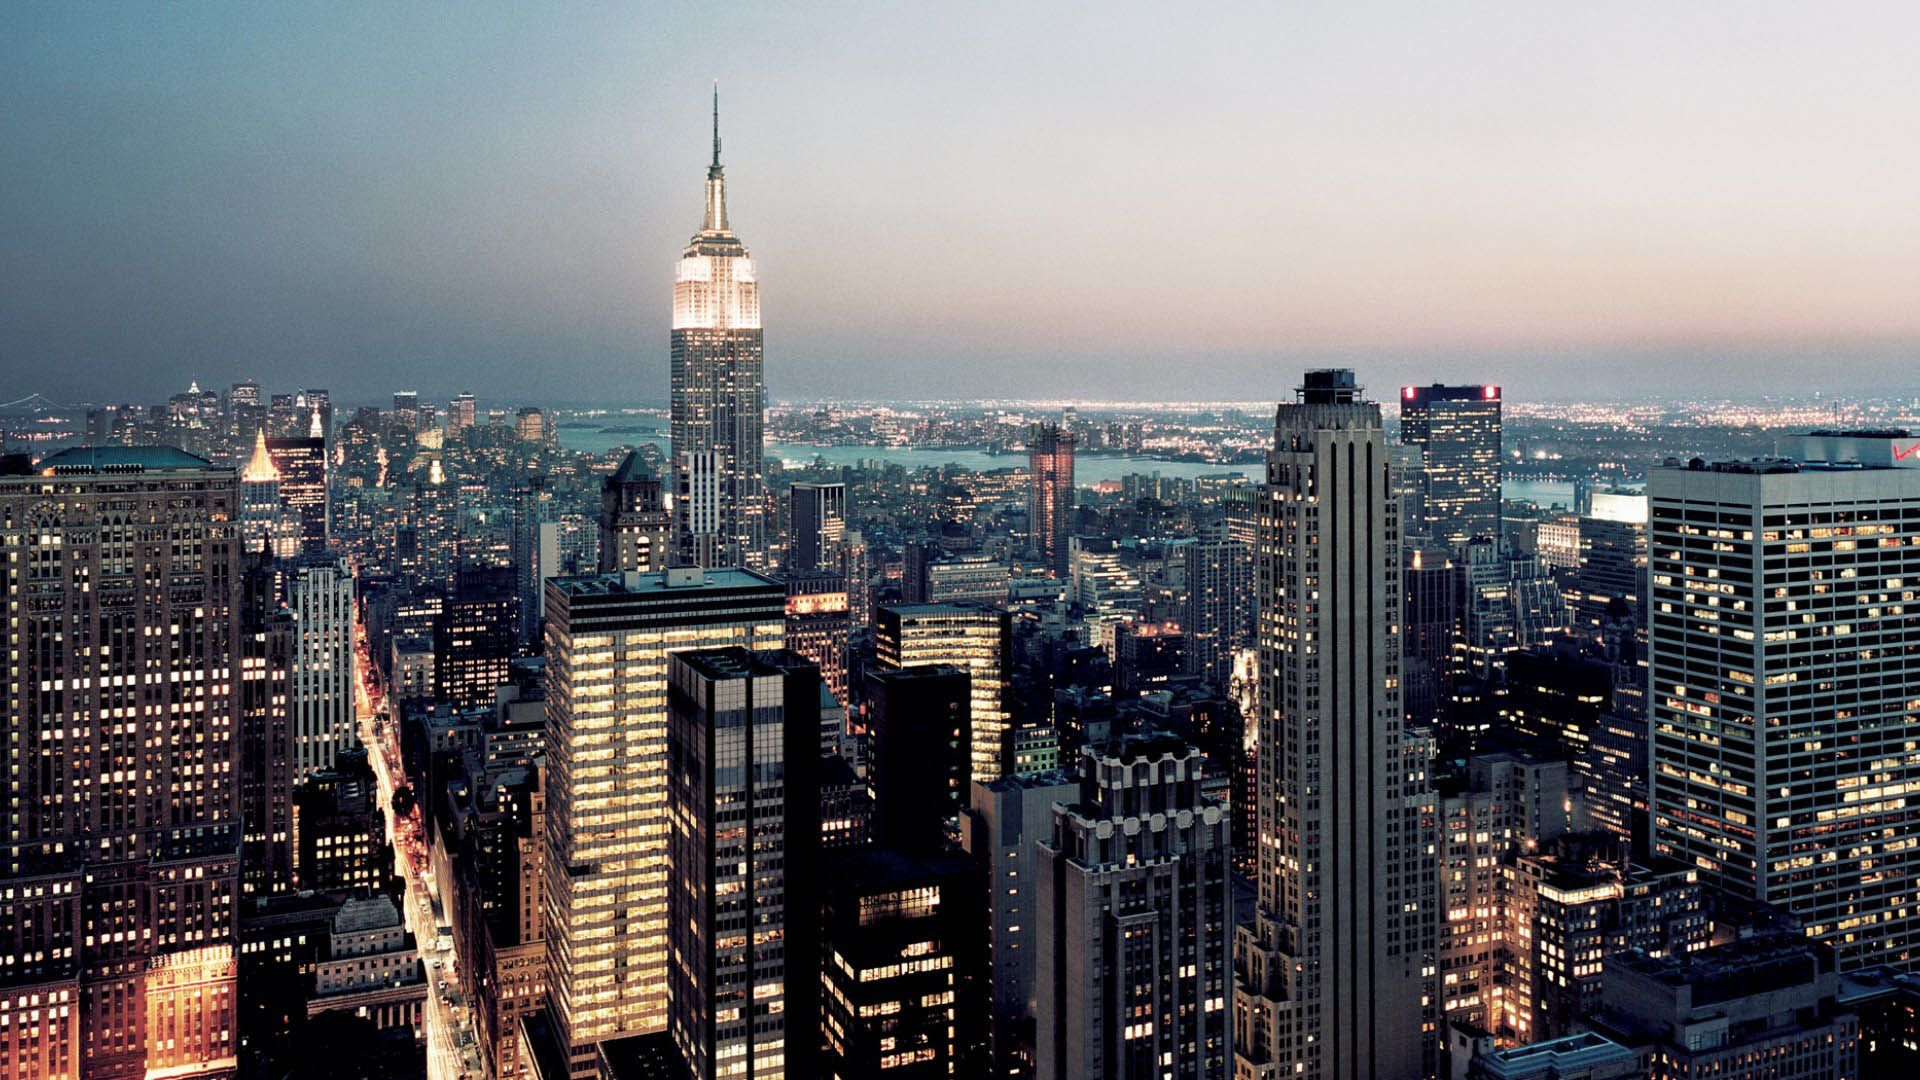 Cities Hd Wallpapers Backgrounds Wallpaper New York Wallpaper